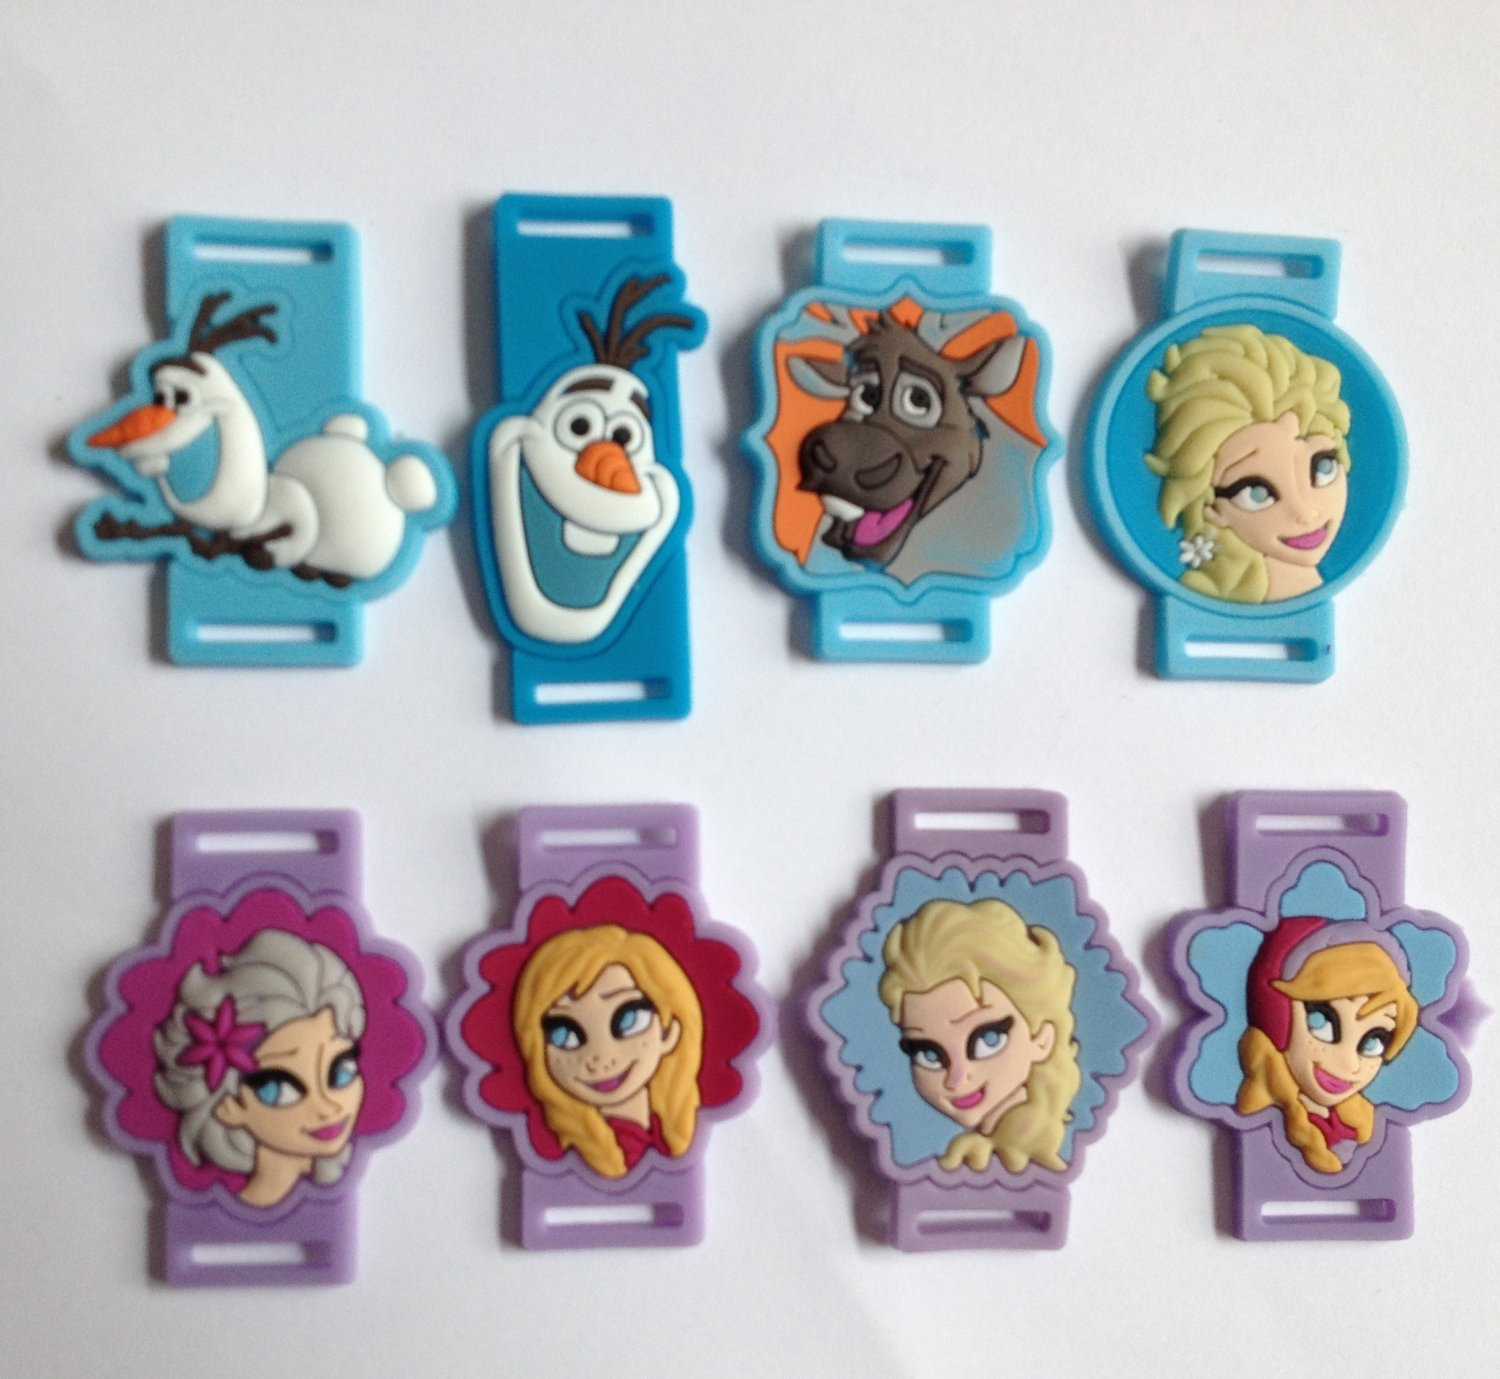 PVC Shoe Lace Cartoon Character Inserts - Frozen